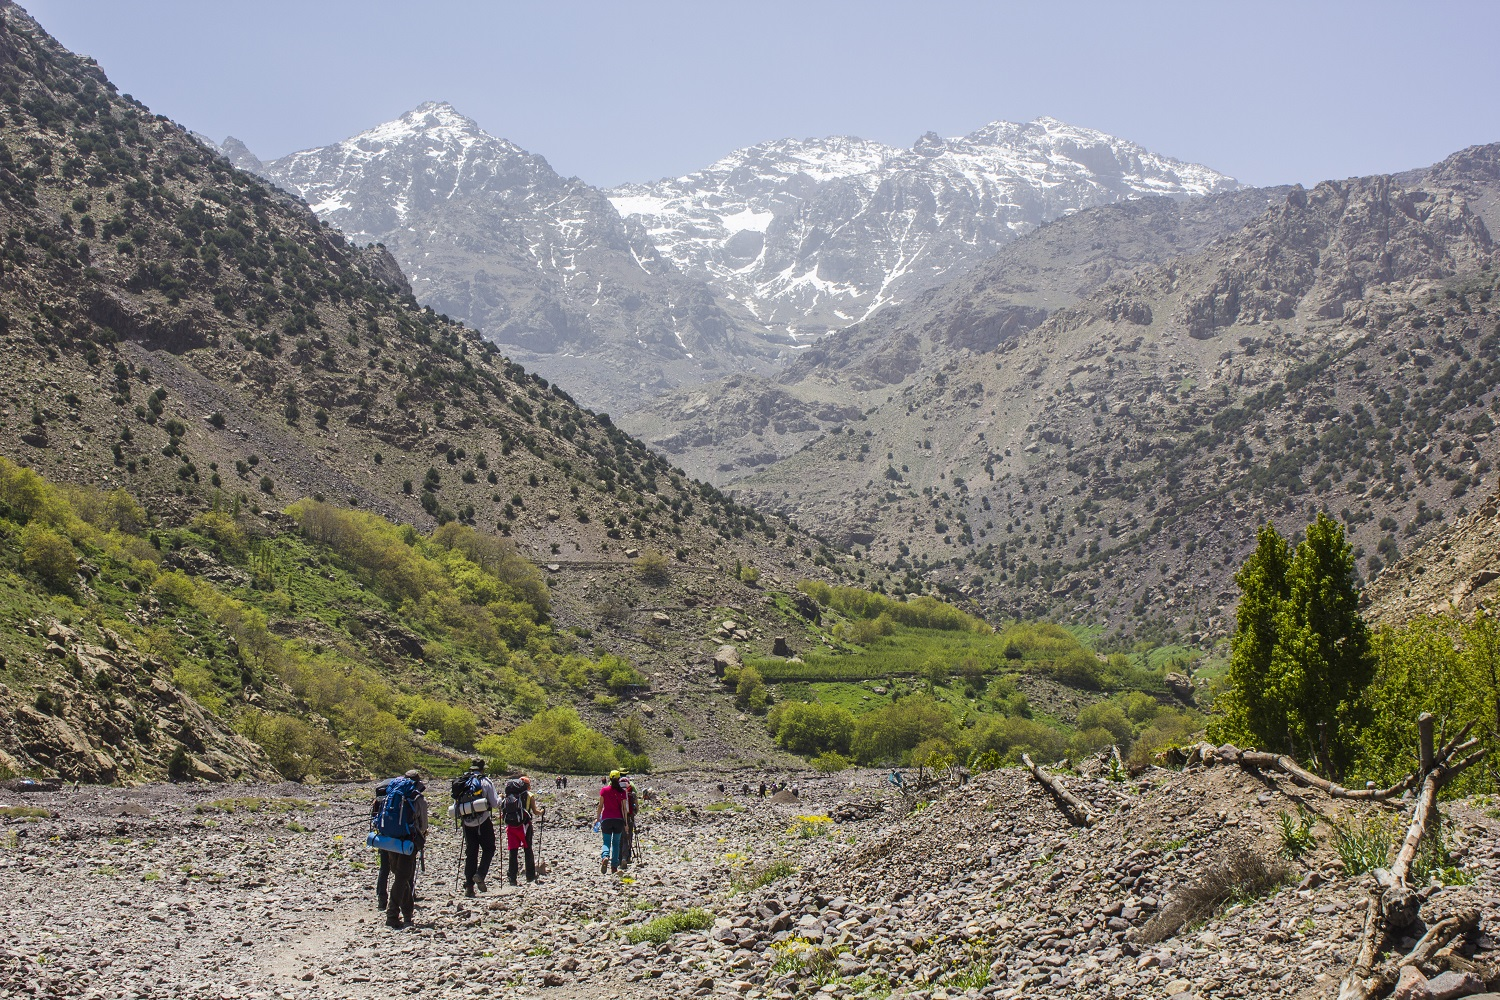 Hikers in Toubkal National Park, Morocco